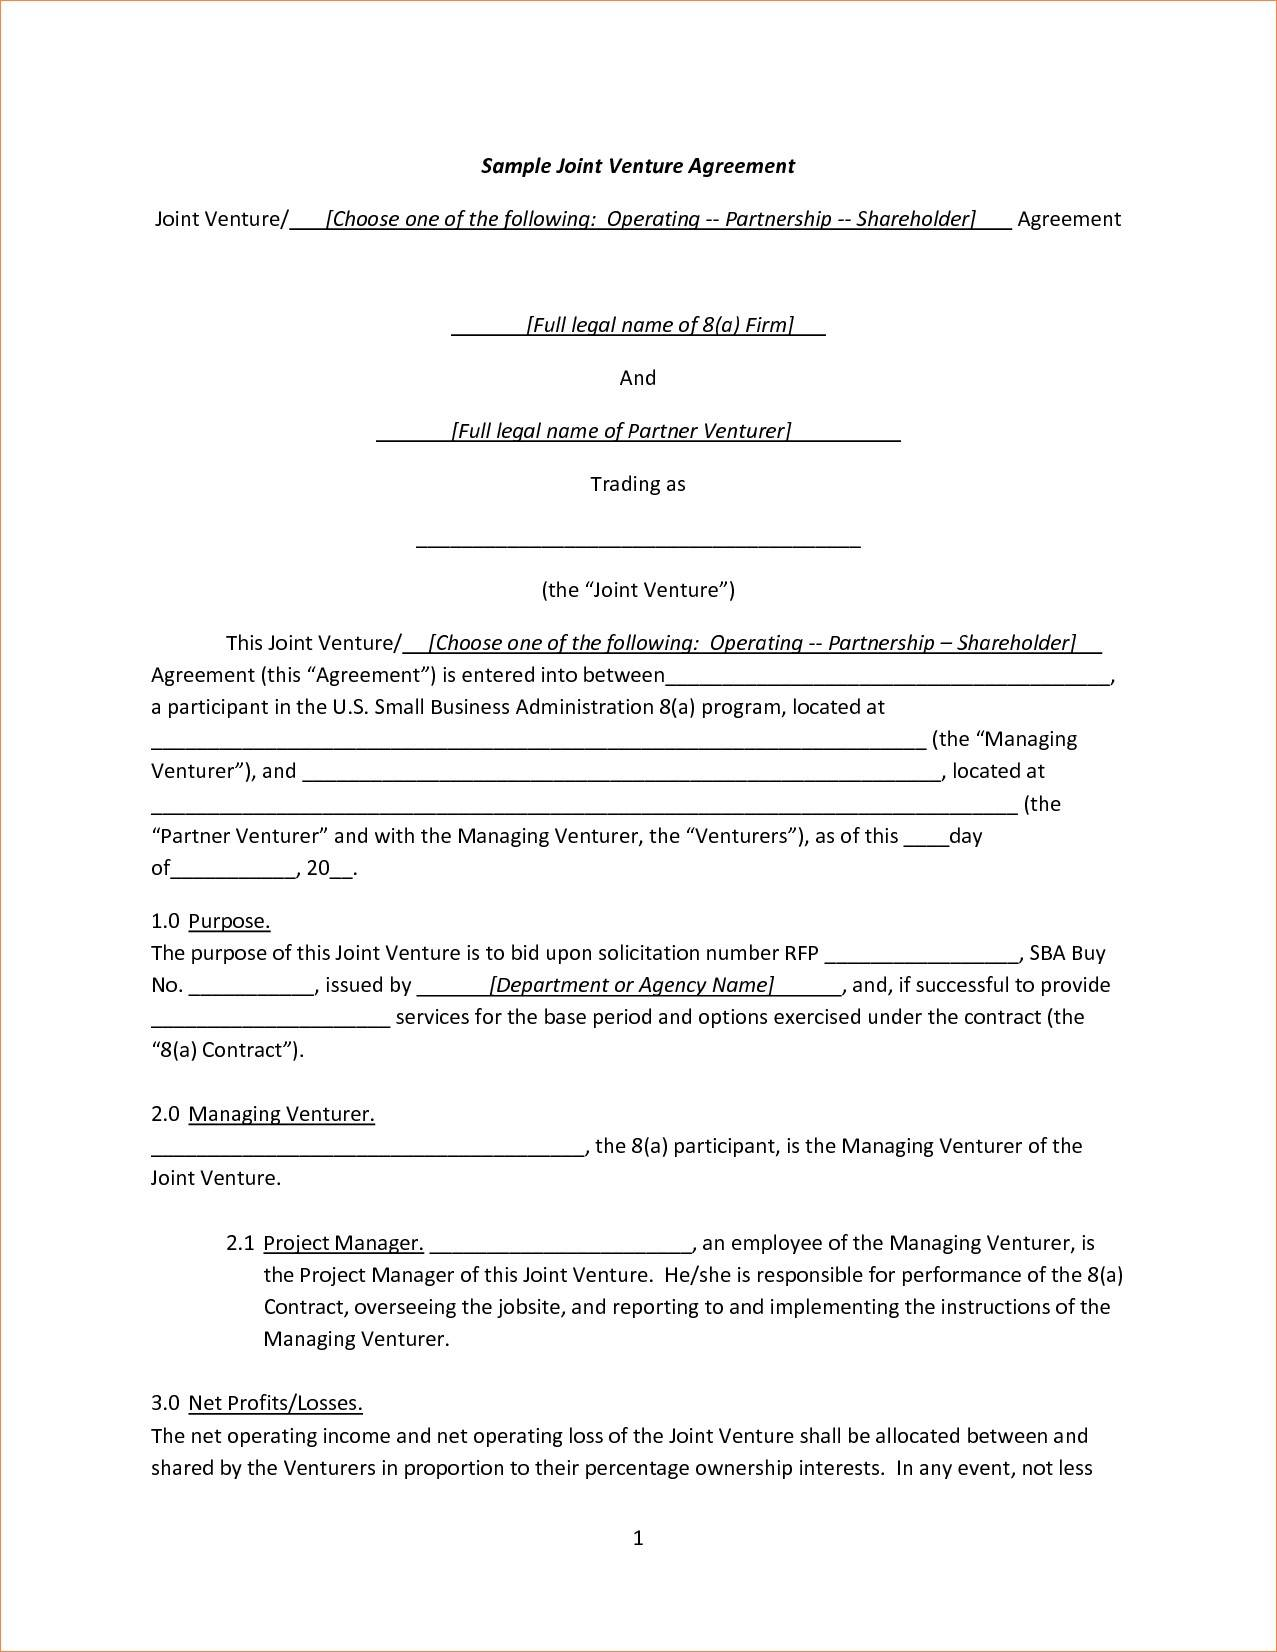 Joint Venture Agreement Template Nz